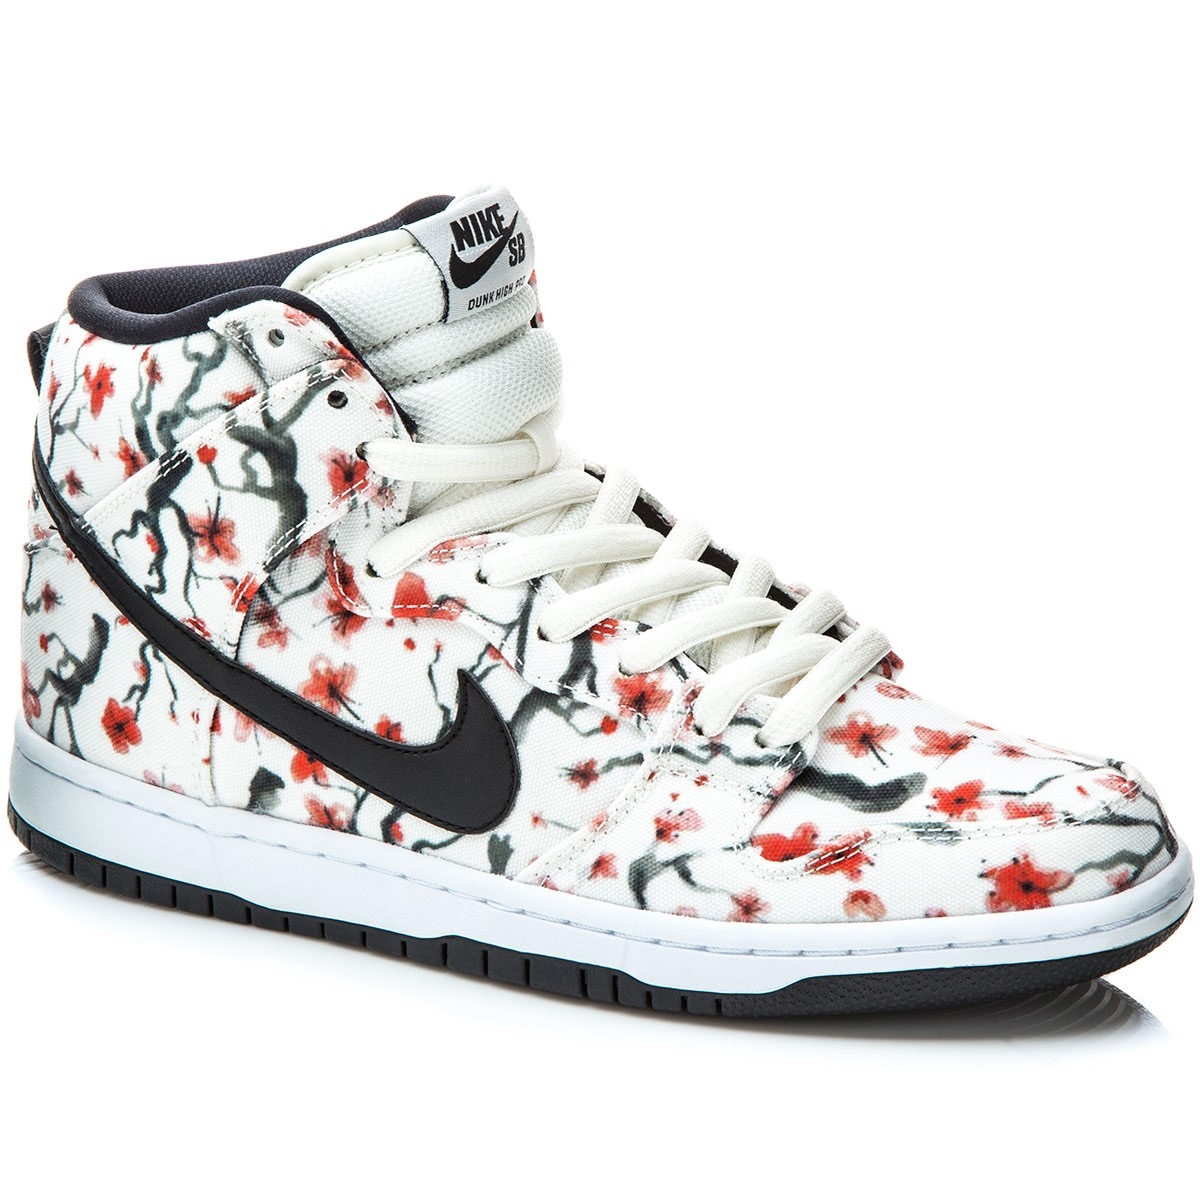 0070e9e90069 Nike Dunk High Pro SB Shoes - Black Black Red - 10